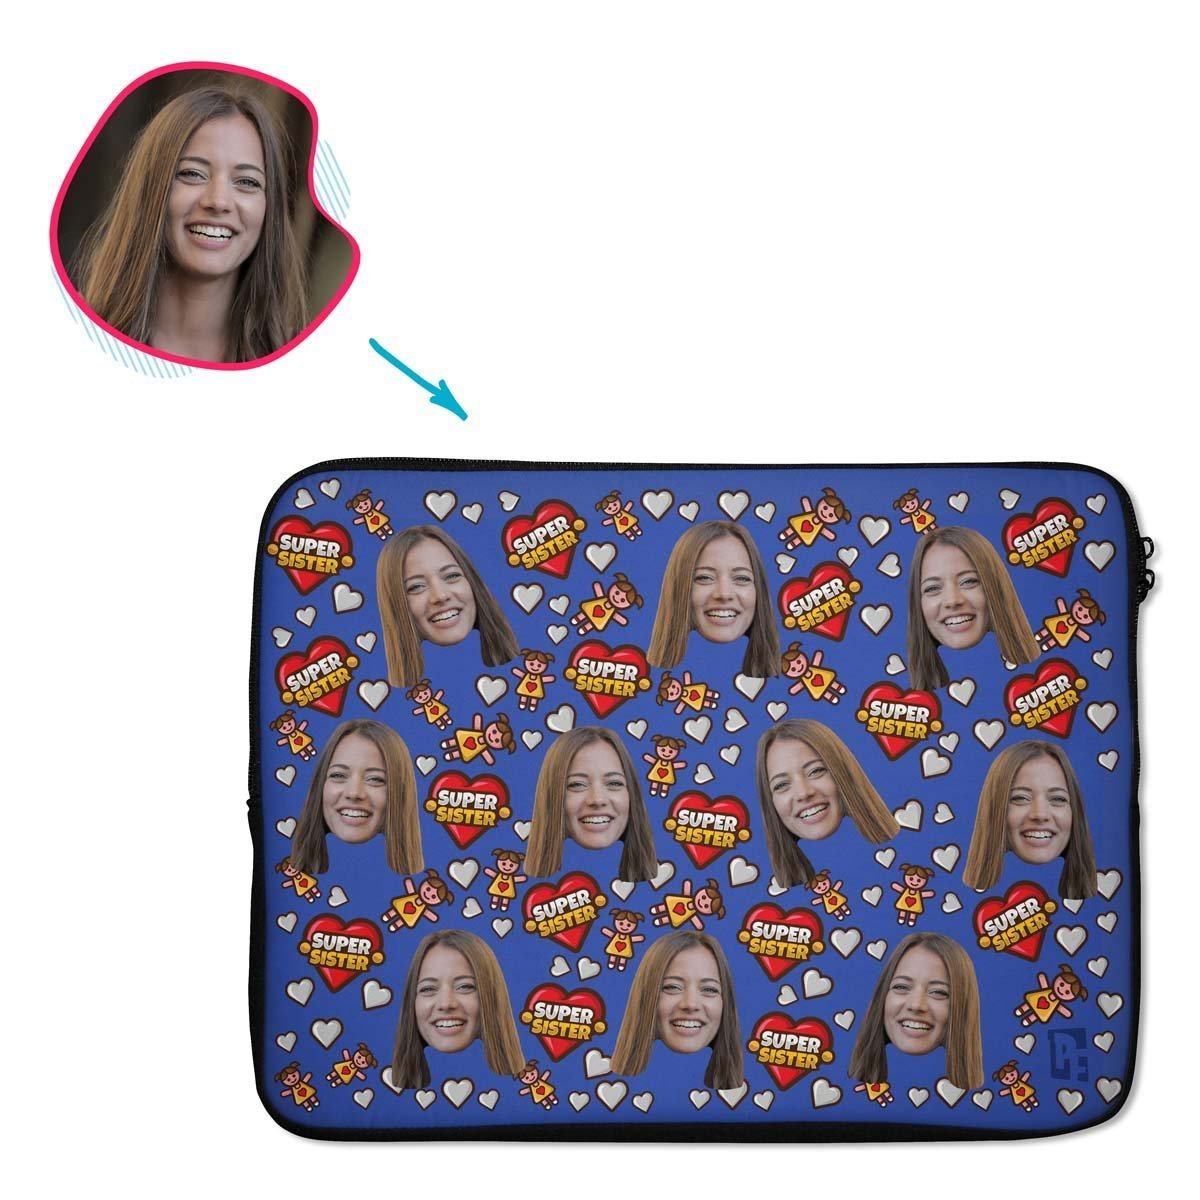 darkblue Super Sister laptop sleeve personalized with photo of face printed on them